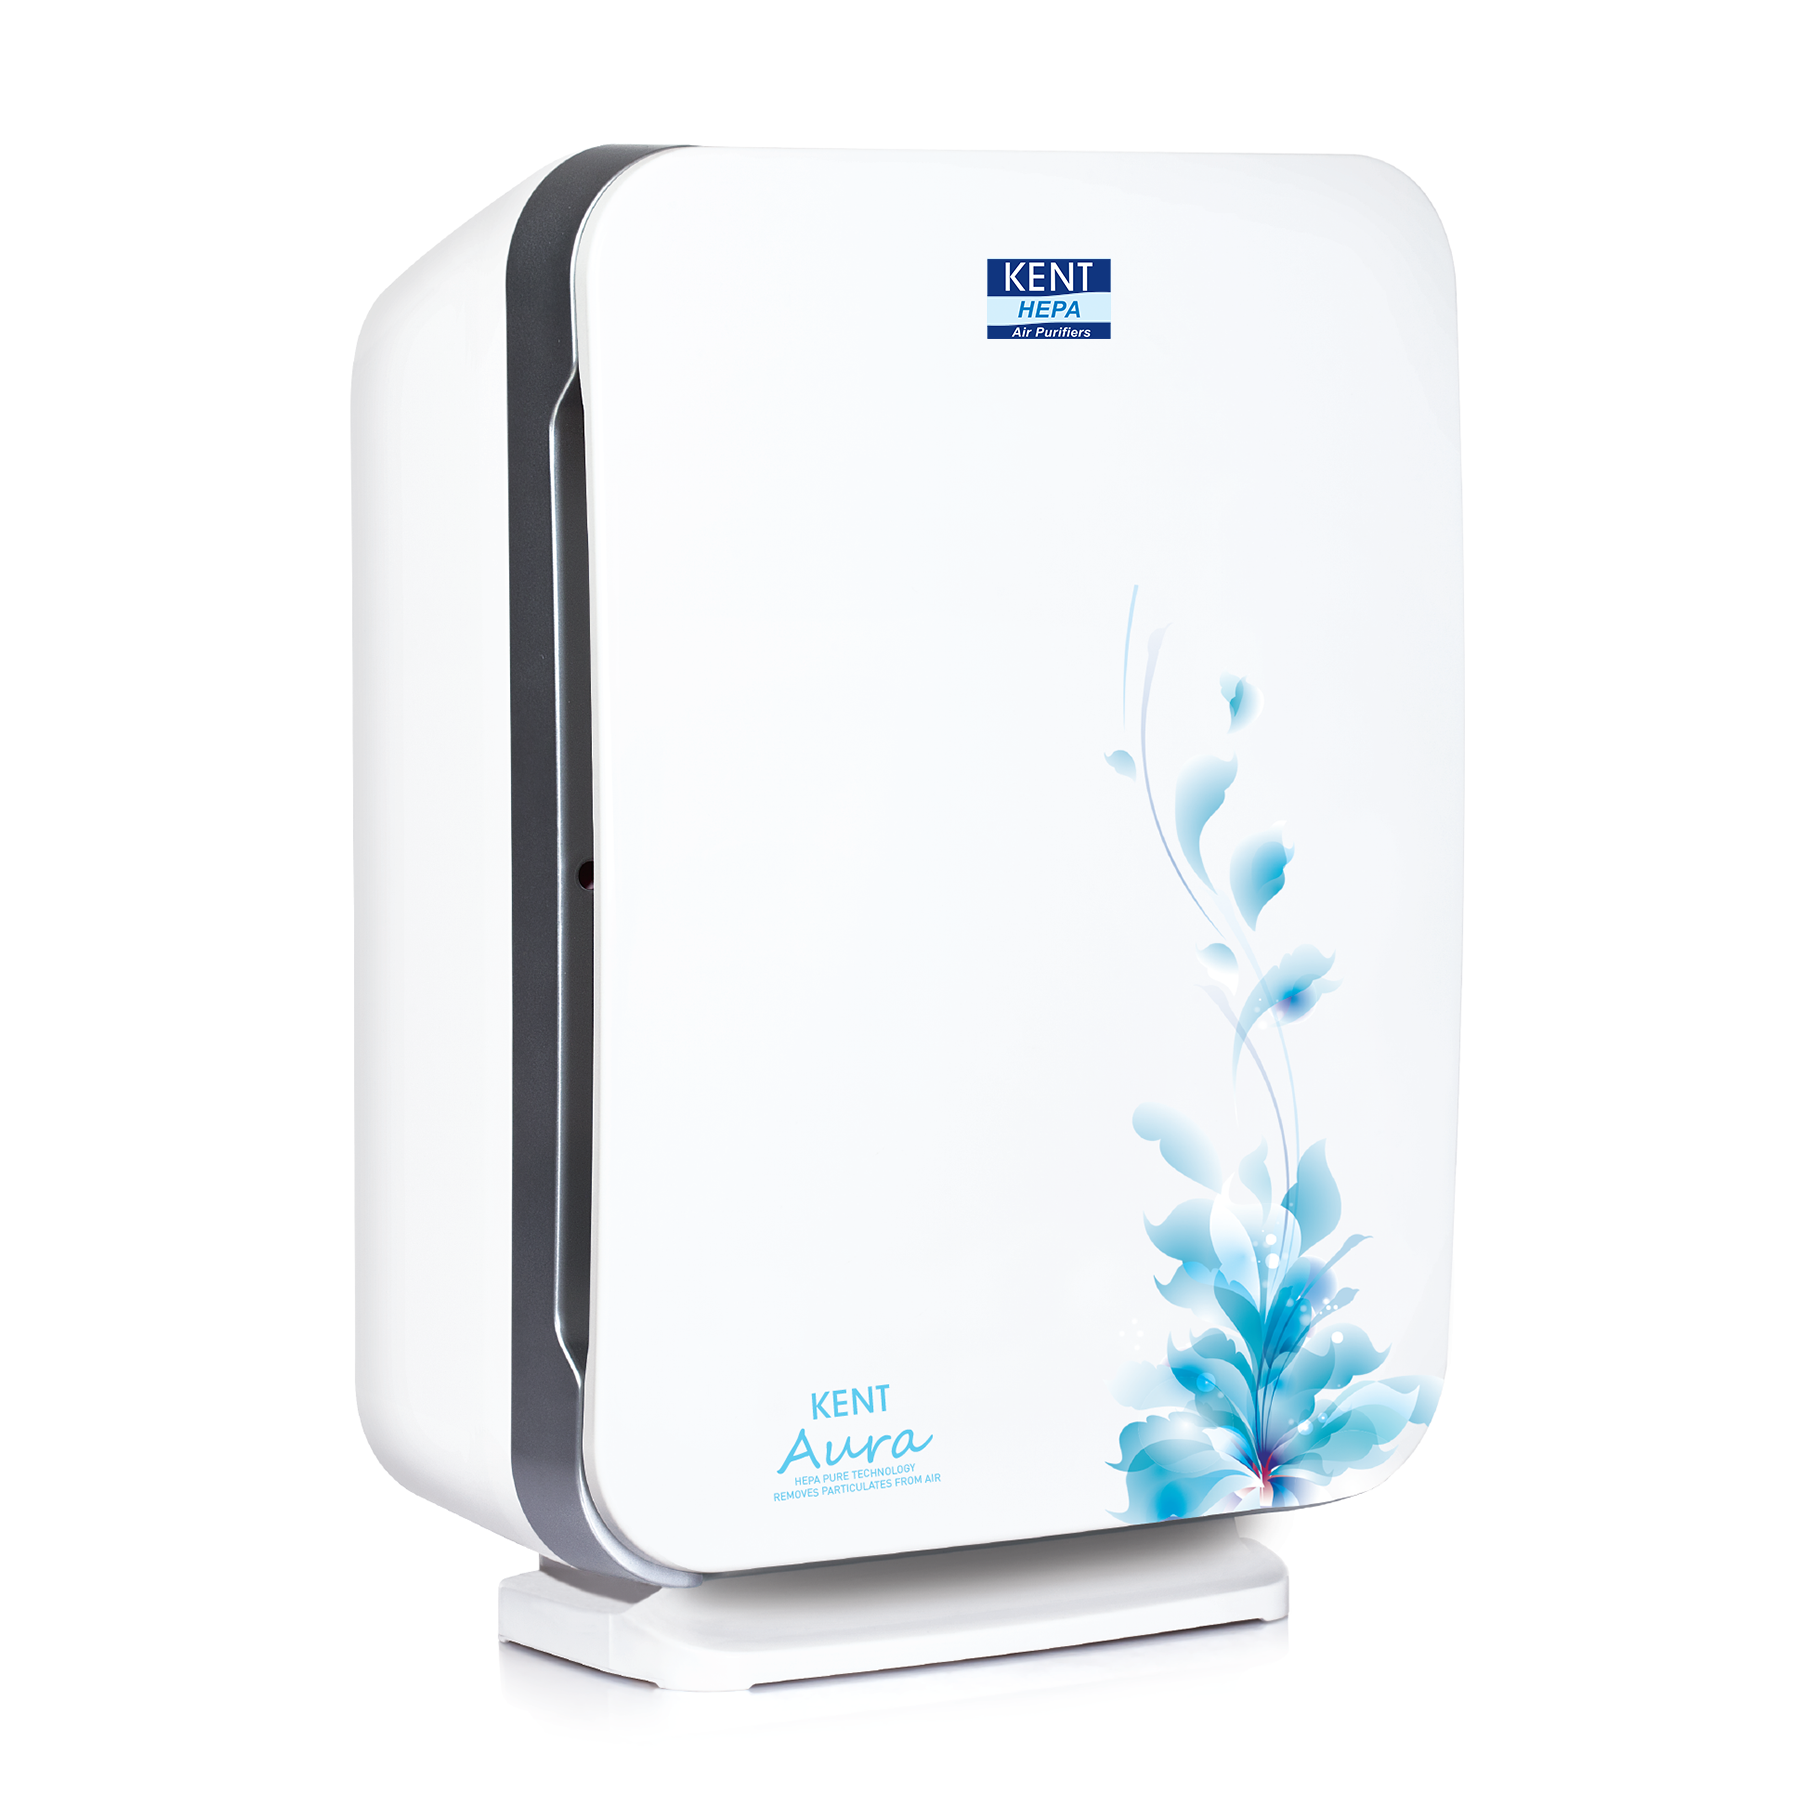 Kent Aura Air Purifier Image